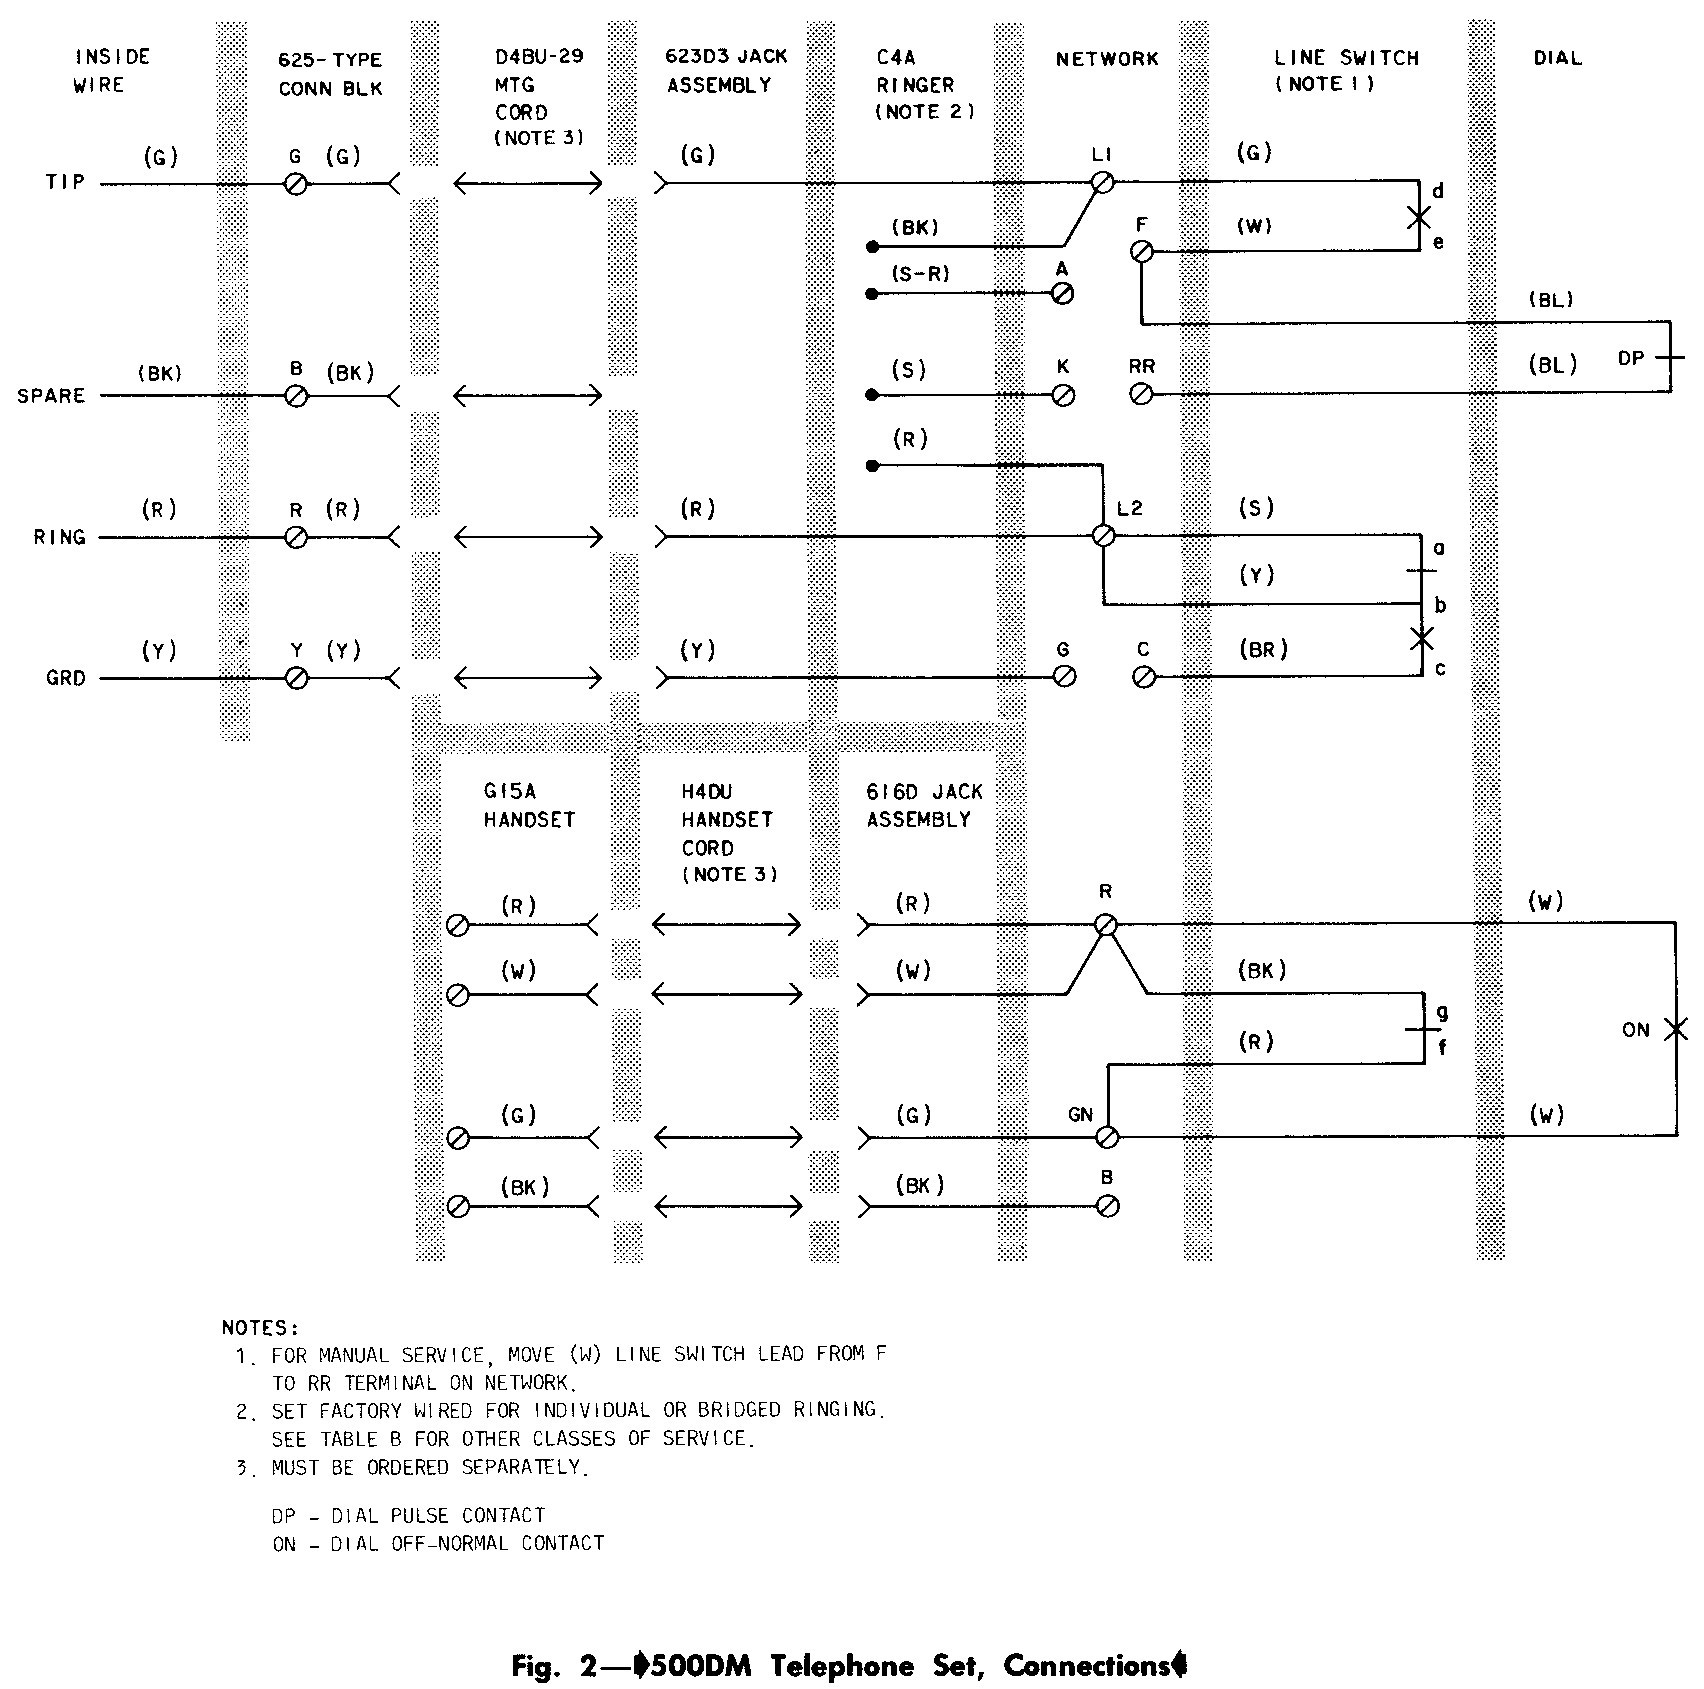 Telephone Wiring Diagram Outside Box Awesome Lovely Telephone Wire Colors Gallery Electrical Circuit Diagram